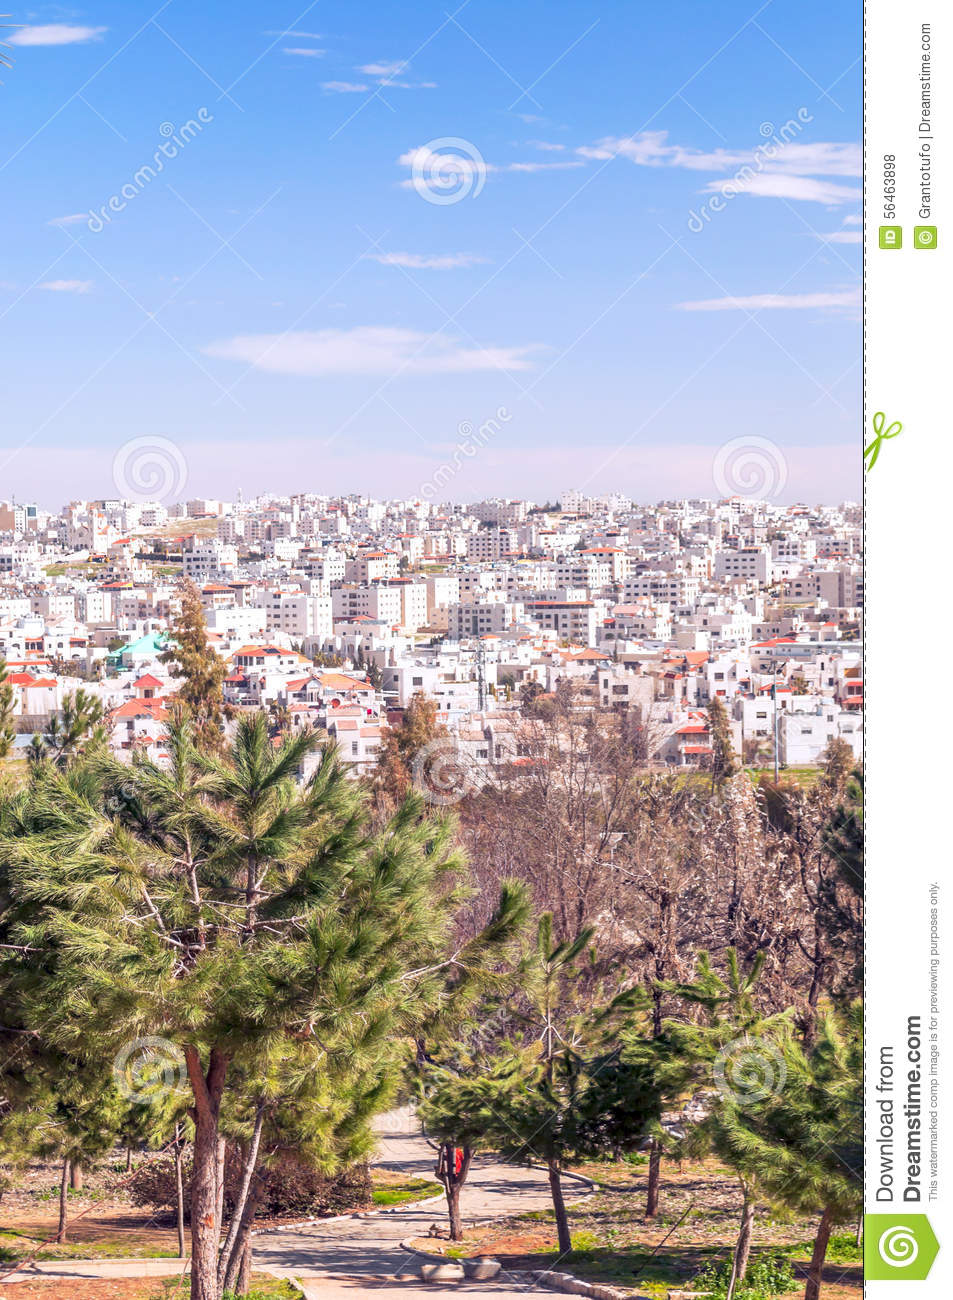 Gardens Amman In Jordan Stock Photo Image Of Outdoor